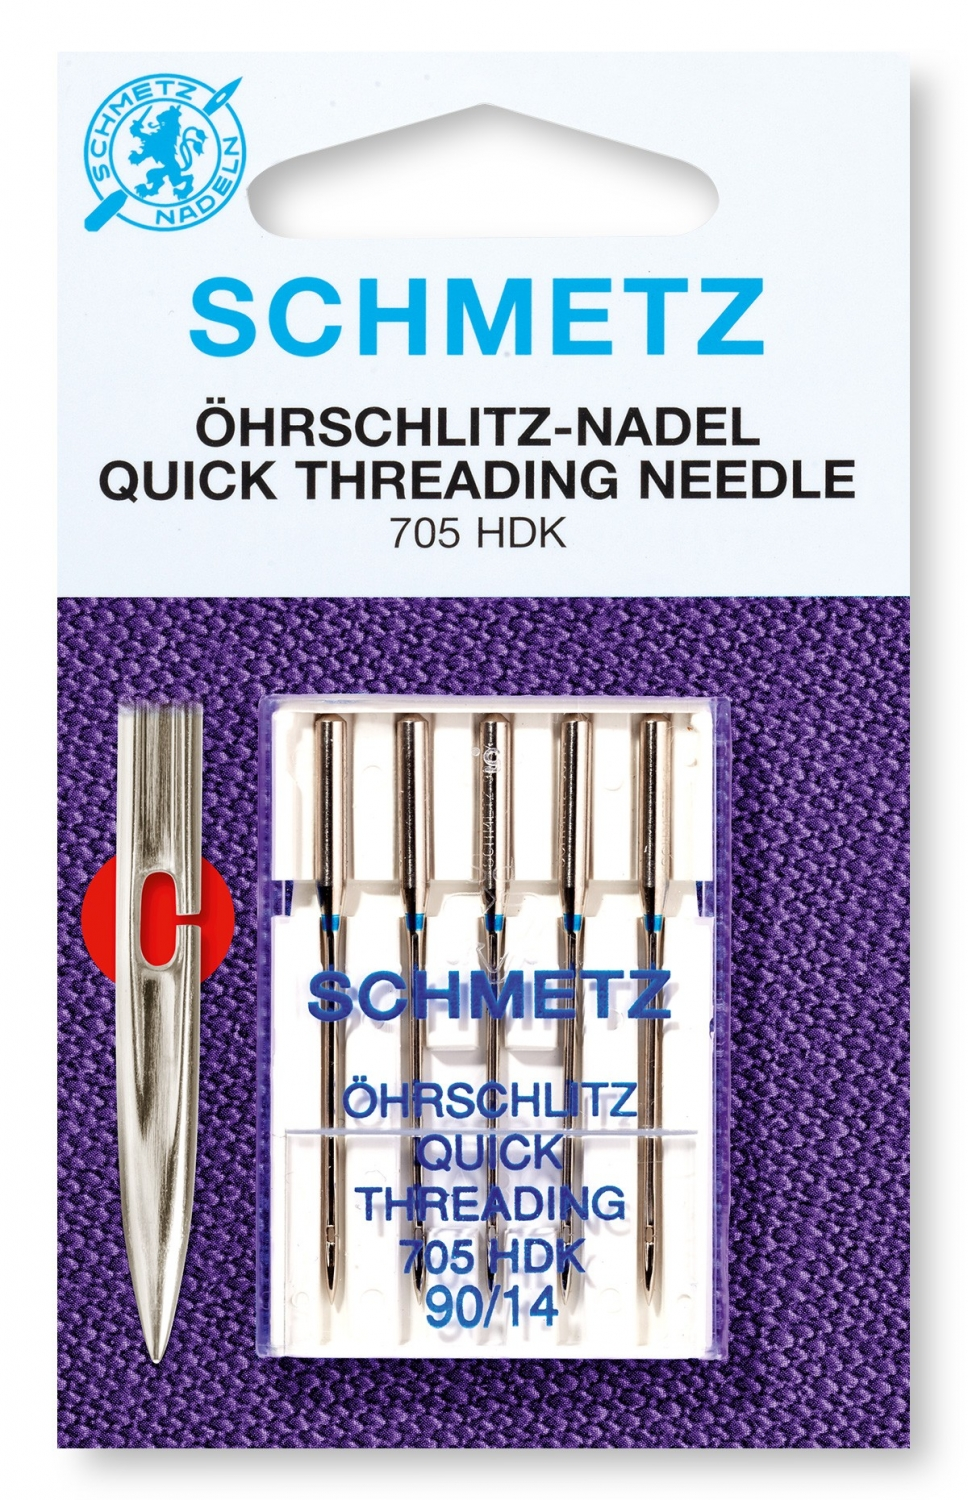 Schmetz - Quick Threading